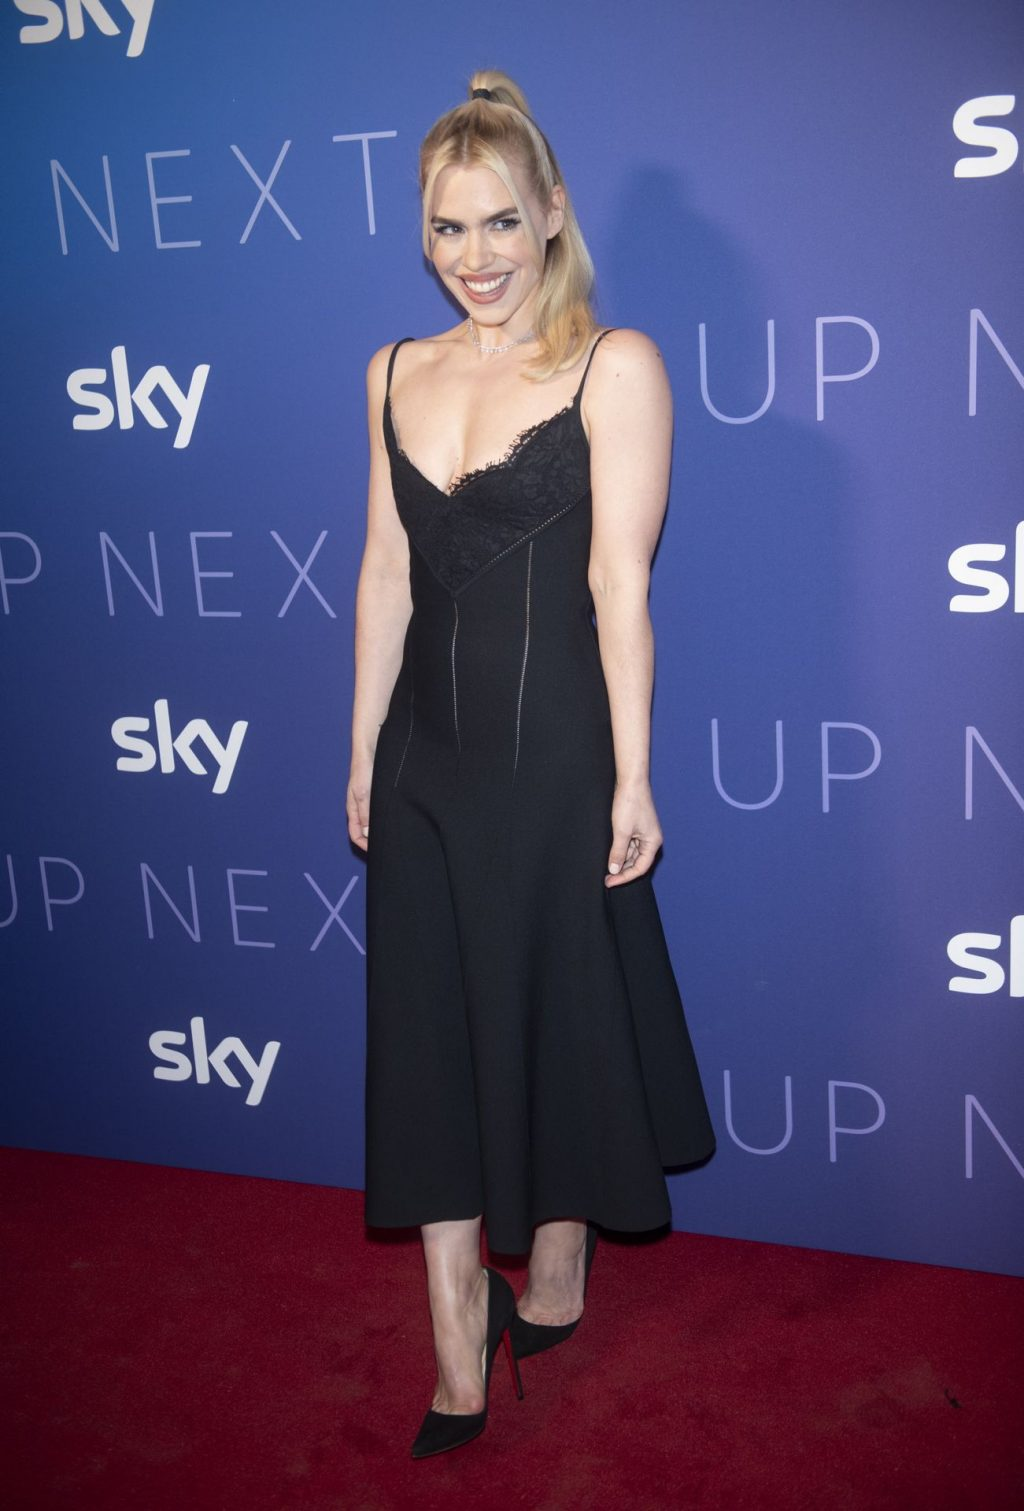 Billie Piper Sexy The Fappening Blog 55 1024x1511 - Billie Piper Smiles at the Sky Up Next Event (67 Photos)